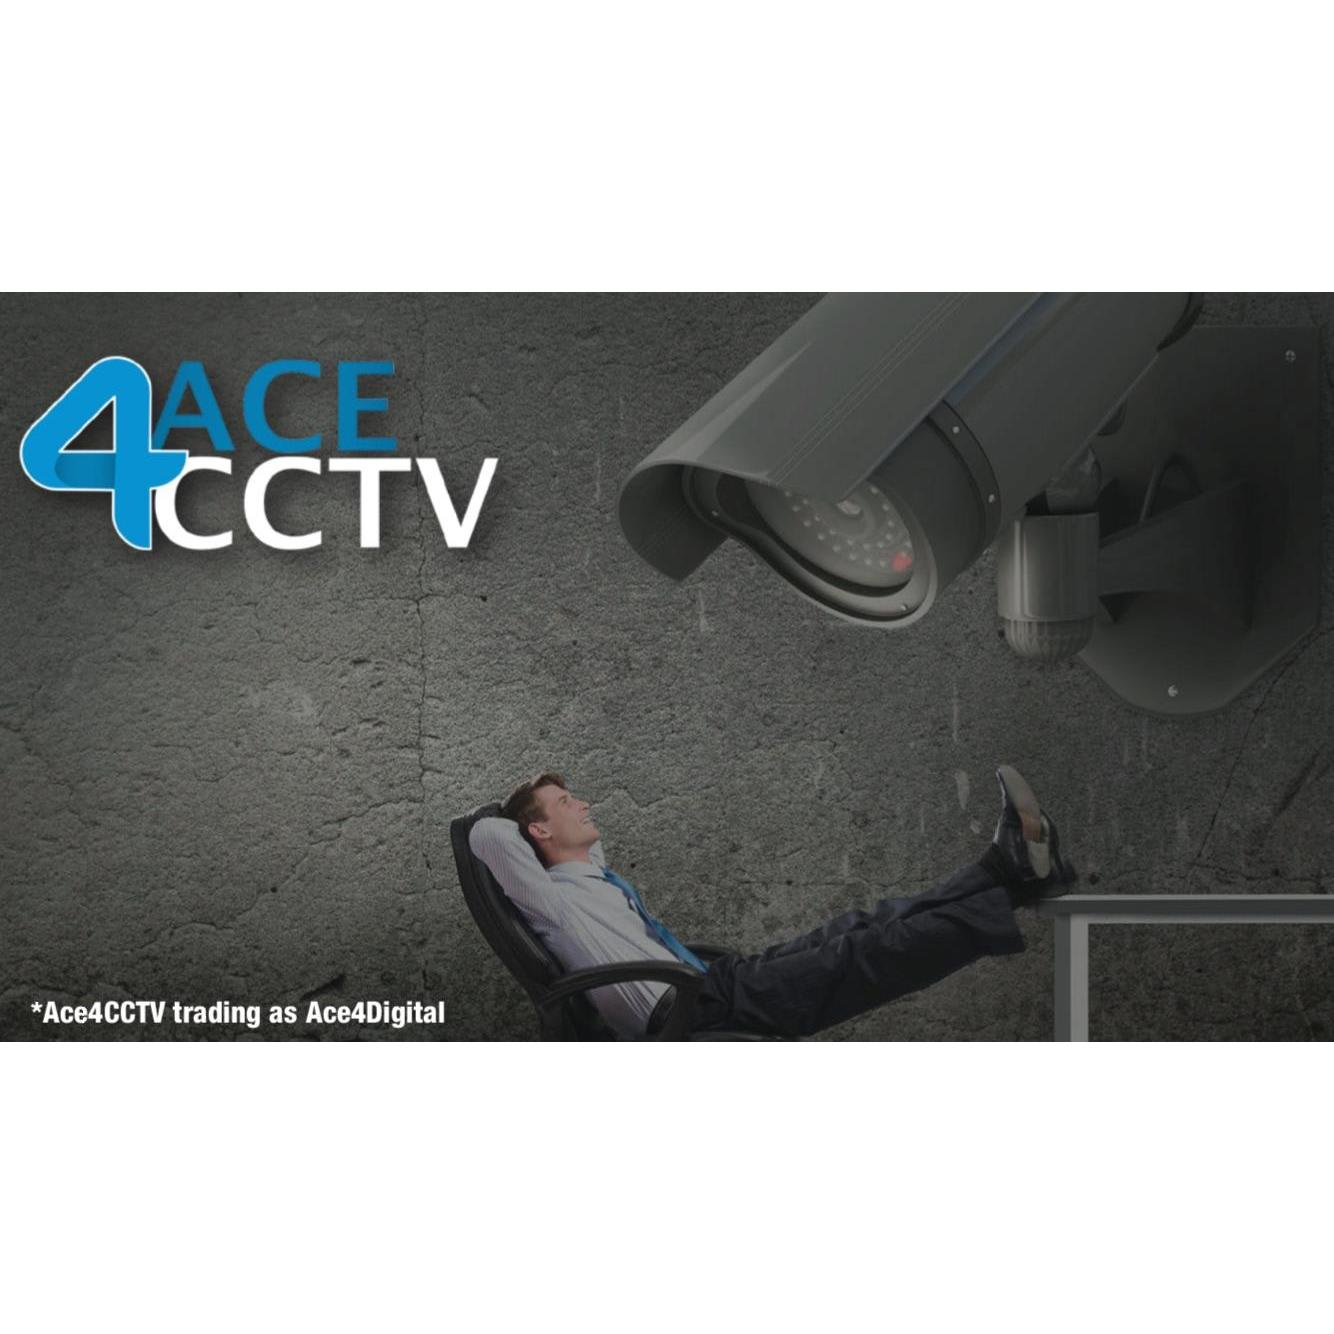 Ace4cctv - Peterborough, Cambridgeshire PE7 8AN - 01733 552048 | ShowMeLocal.com